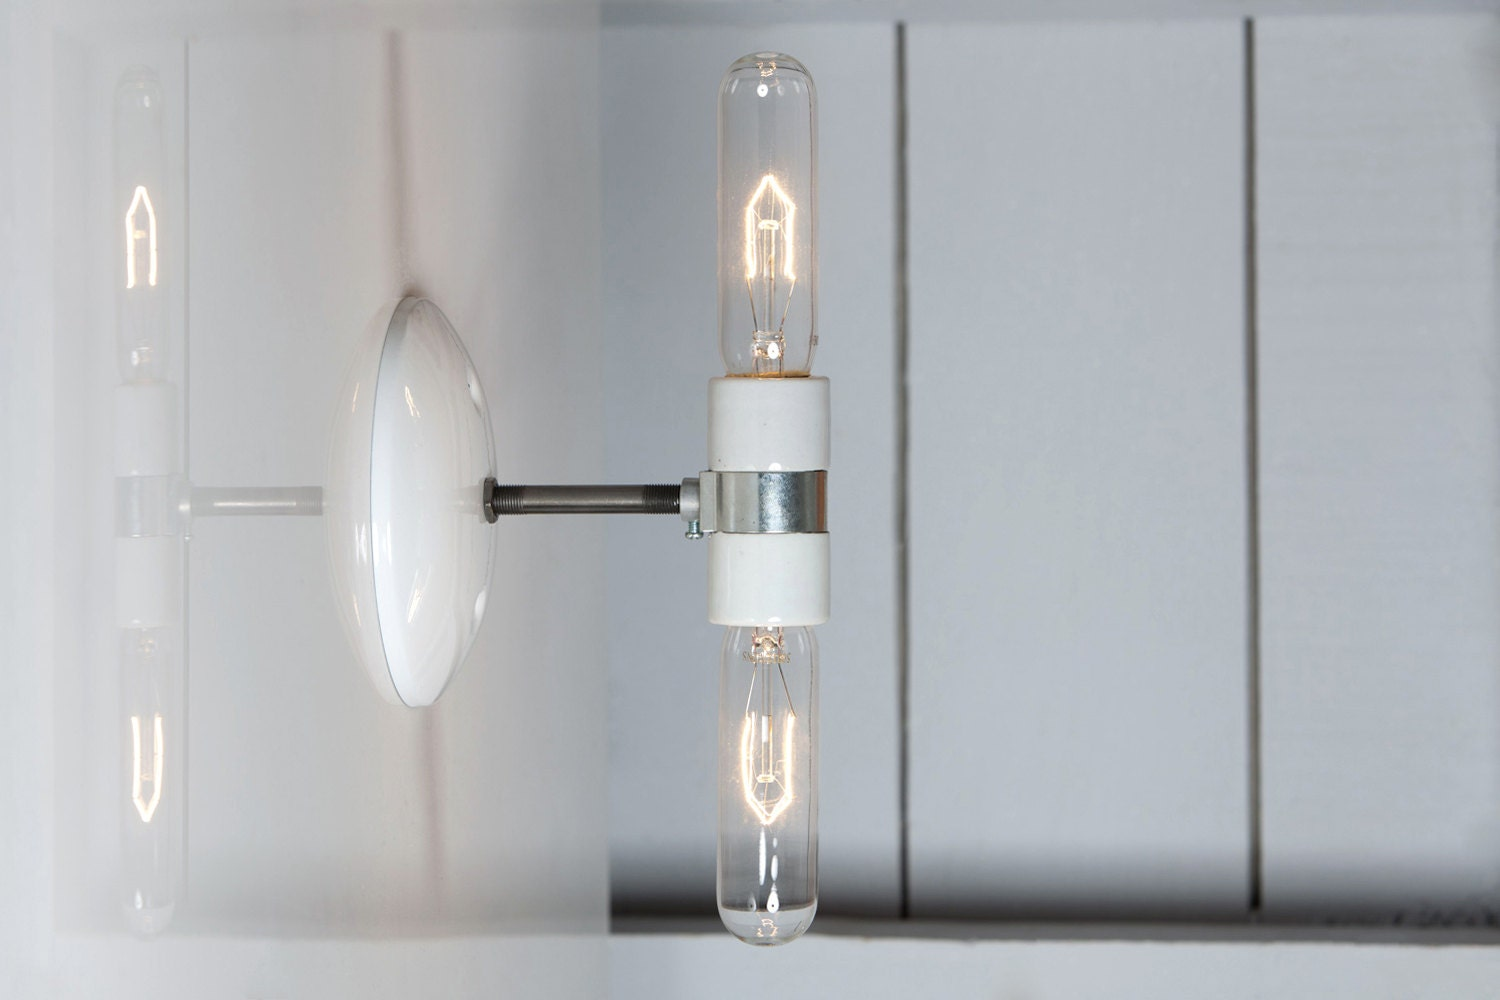 Industrial Style Double Wall Lights : Industrial Wall Sconce Double Wall Light Bare Bulb Wall